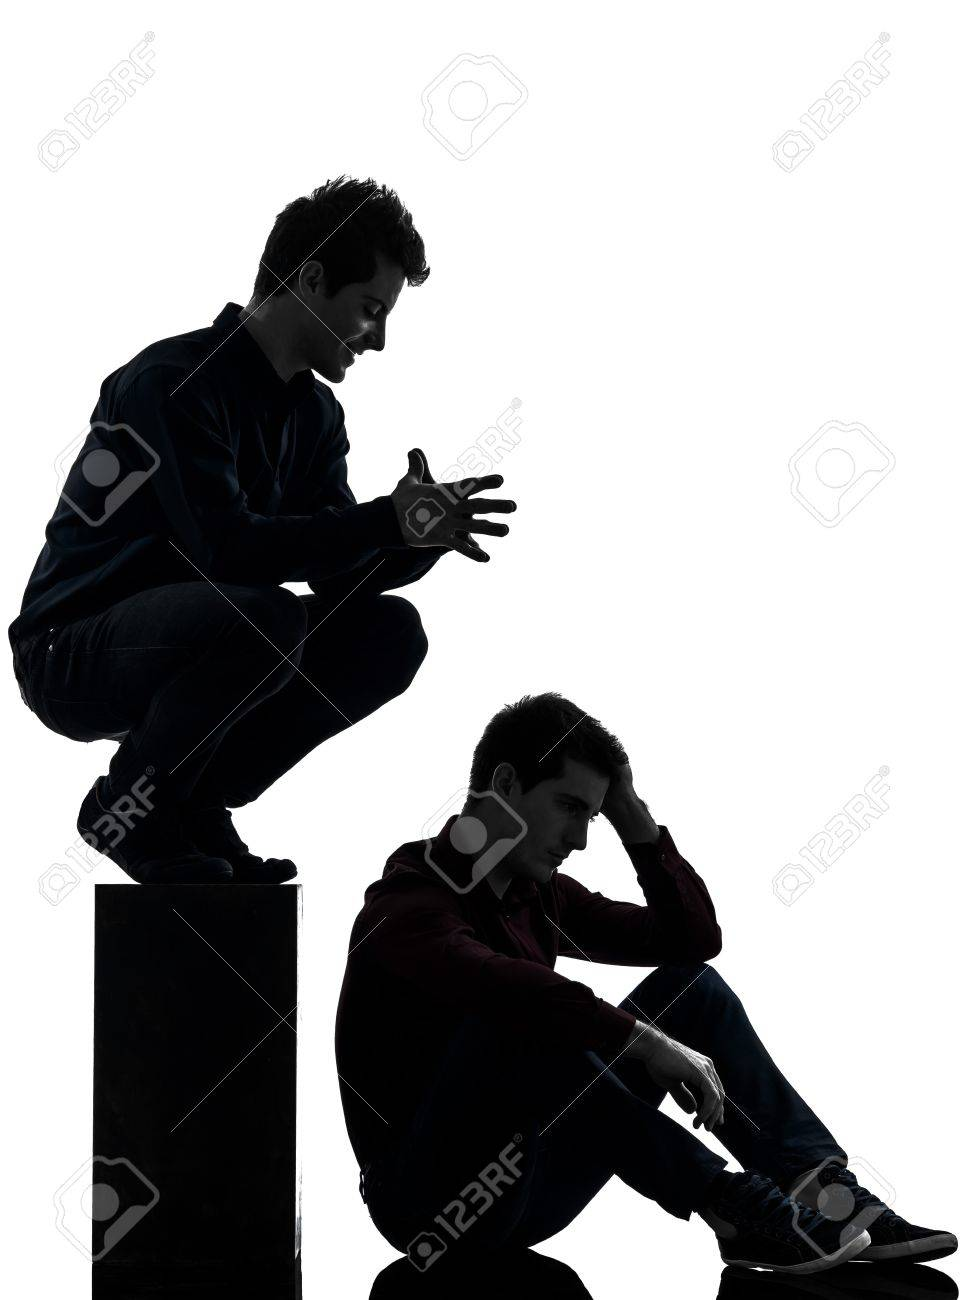 Two Caucasian Young Men Domination Concept Shadow White Background 973x1300